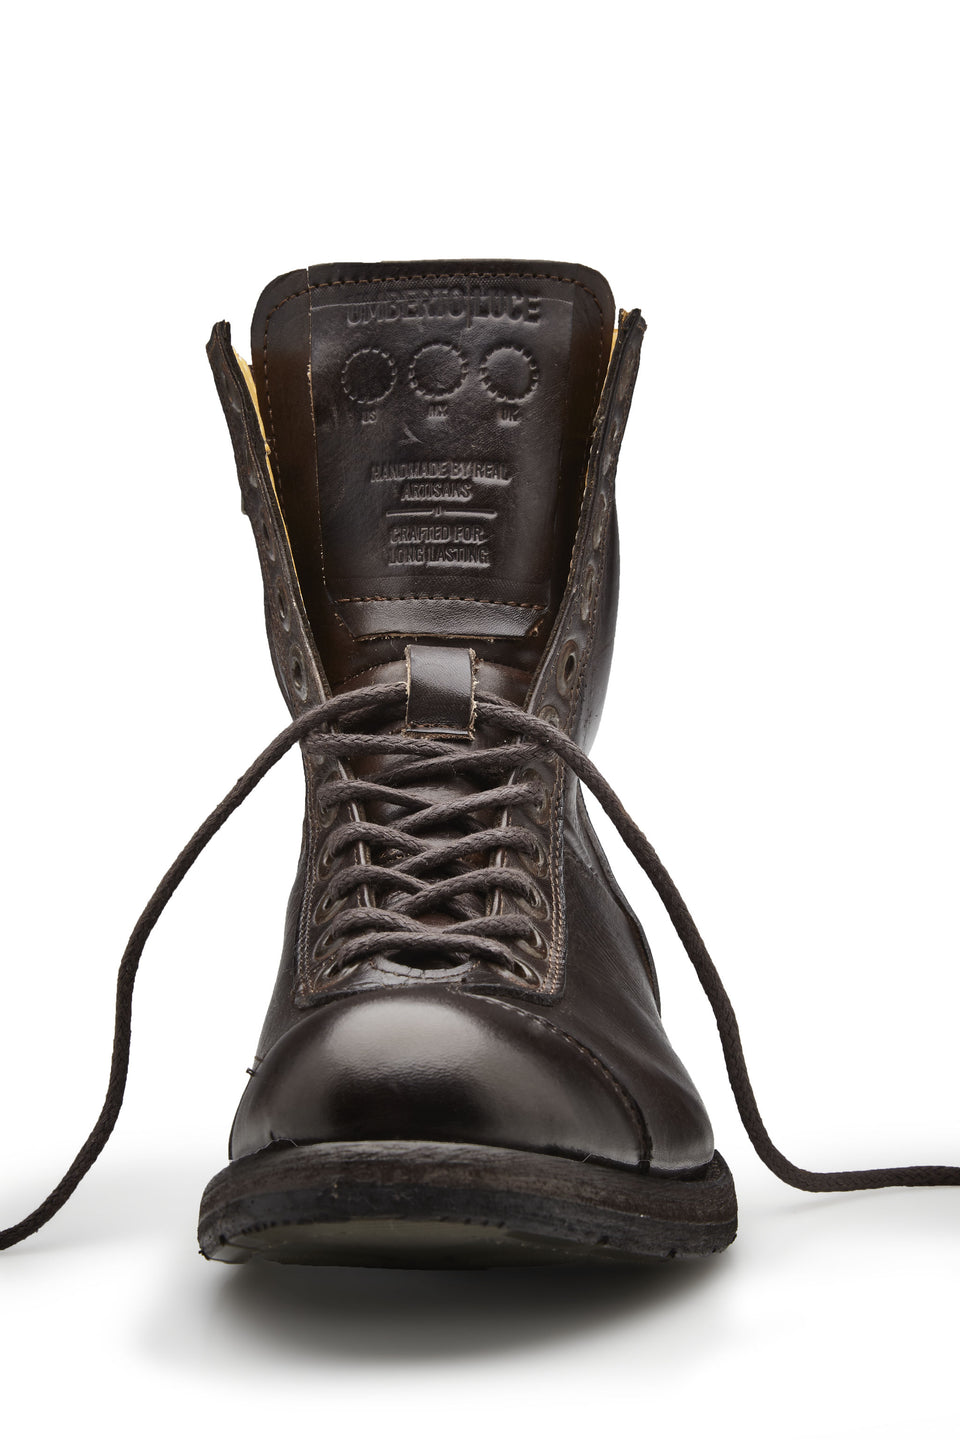 Wallach Motorcycle Boots By Umberto Luce